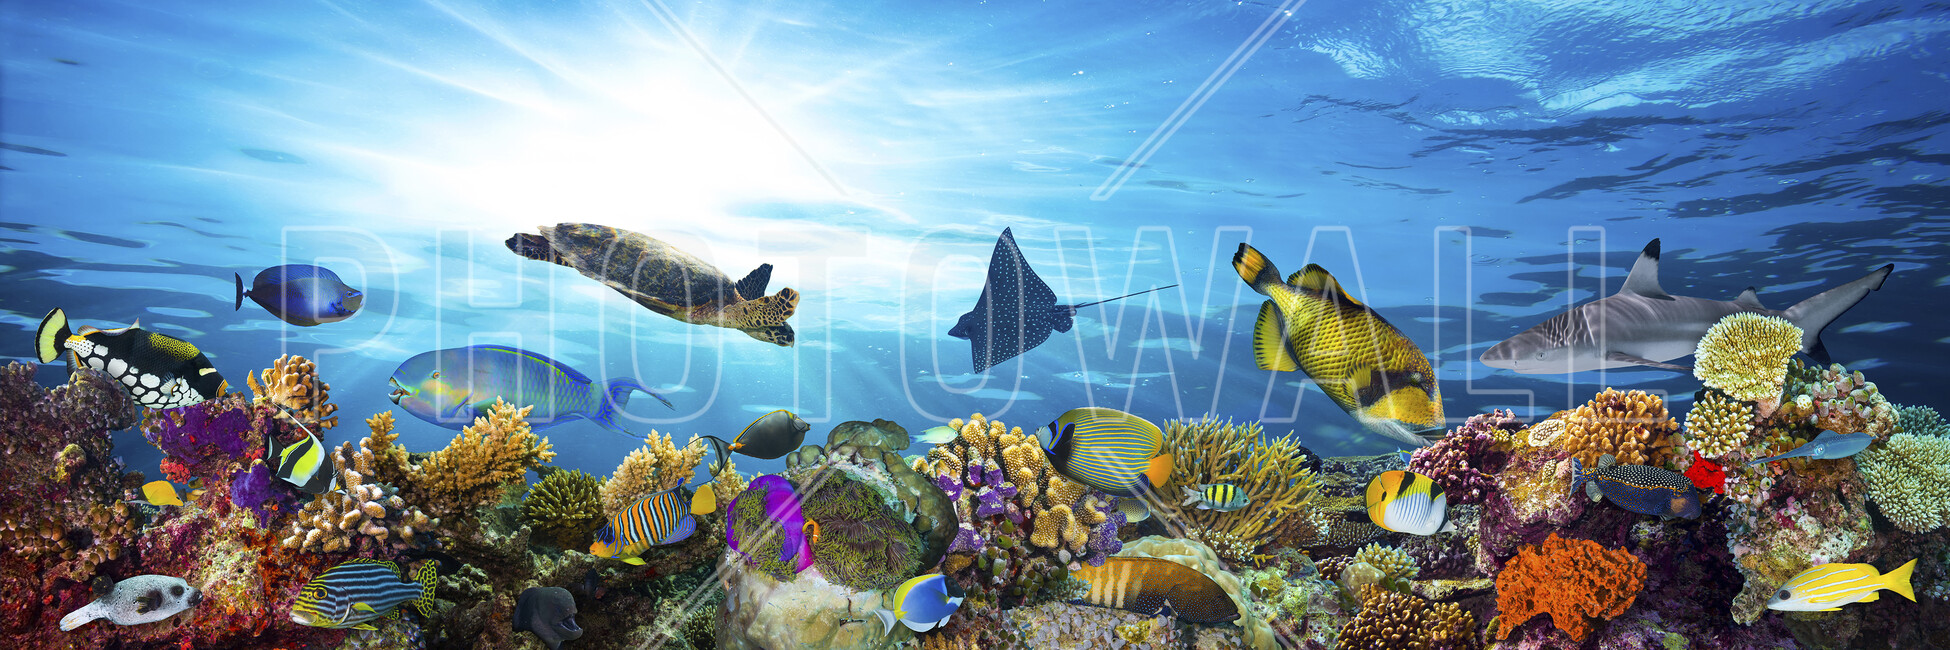 Coral reef panorama wall mural photo wallpaper photowall for Coral reef mural